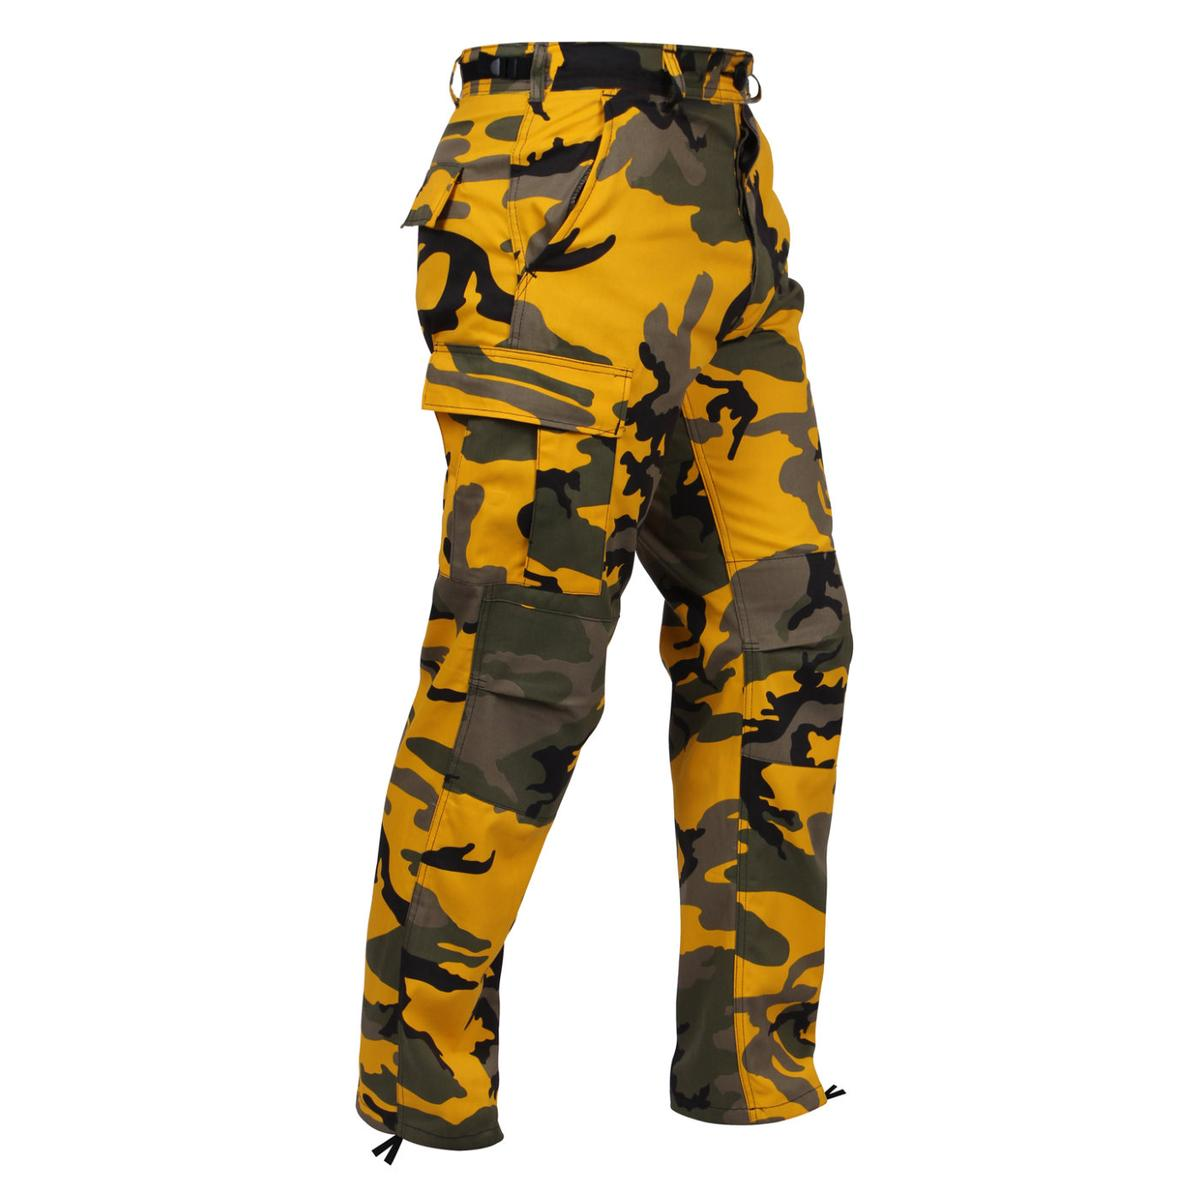 Rothco Color Camo Tactical BDU Pant - Savage Orange Camo 55508cc9ace